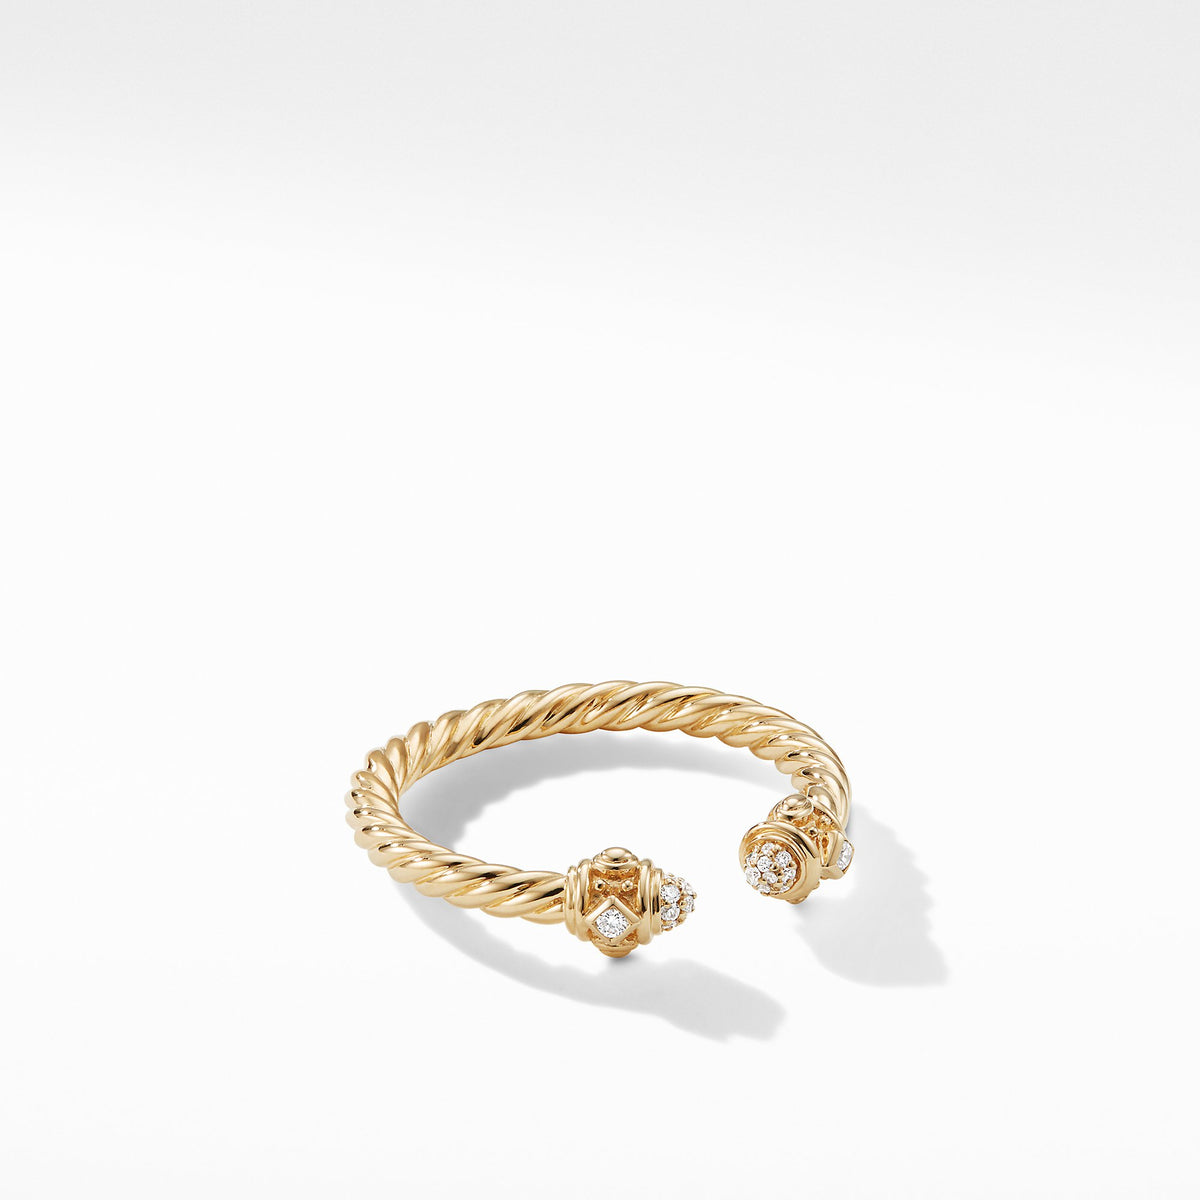 Renaissance Ring in 18K Gold with Diamonds